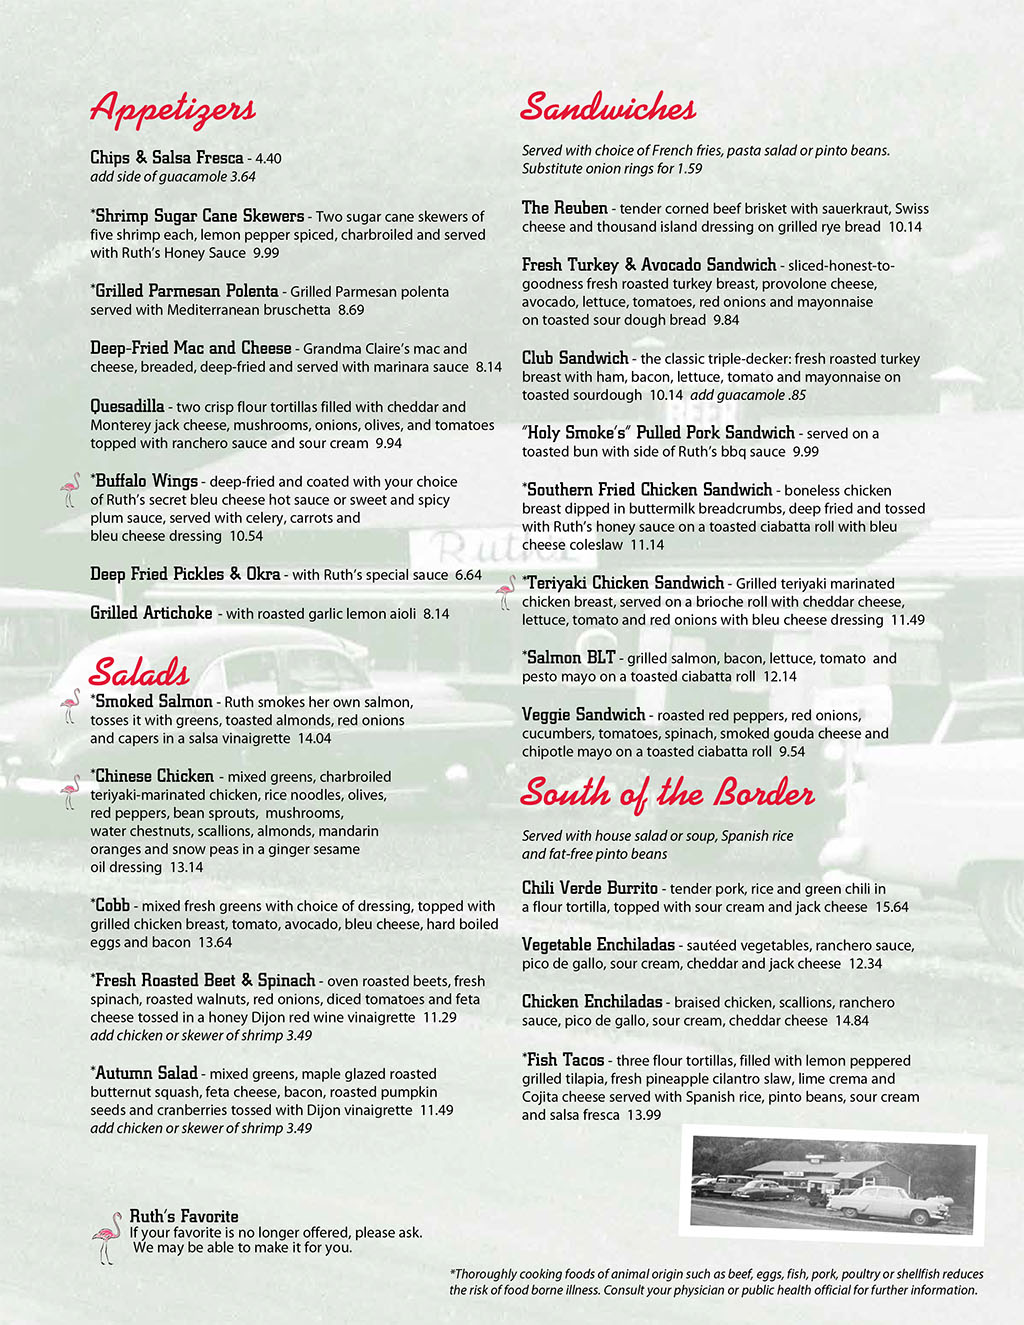 Ruths Diner menu - dinner, apps, salads, sandwiches, south of the border